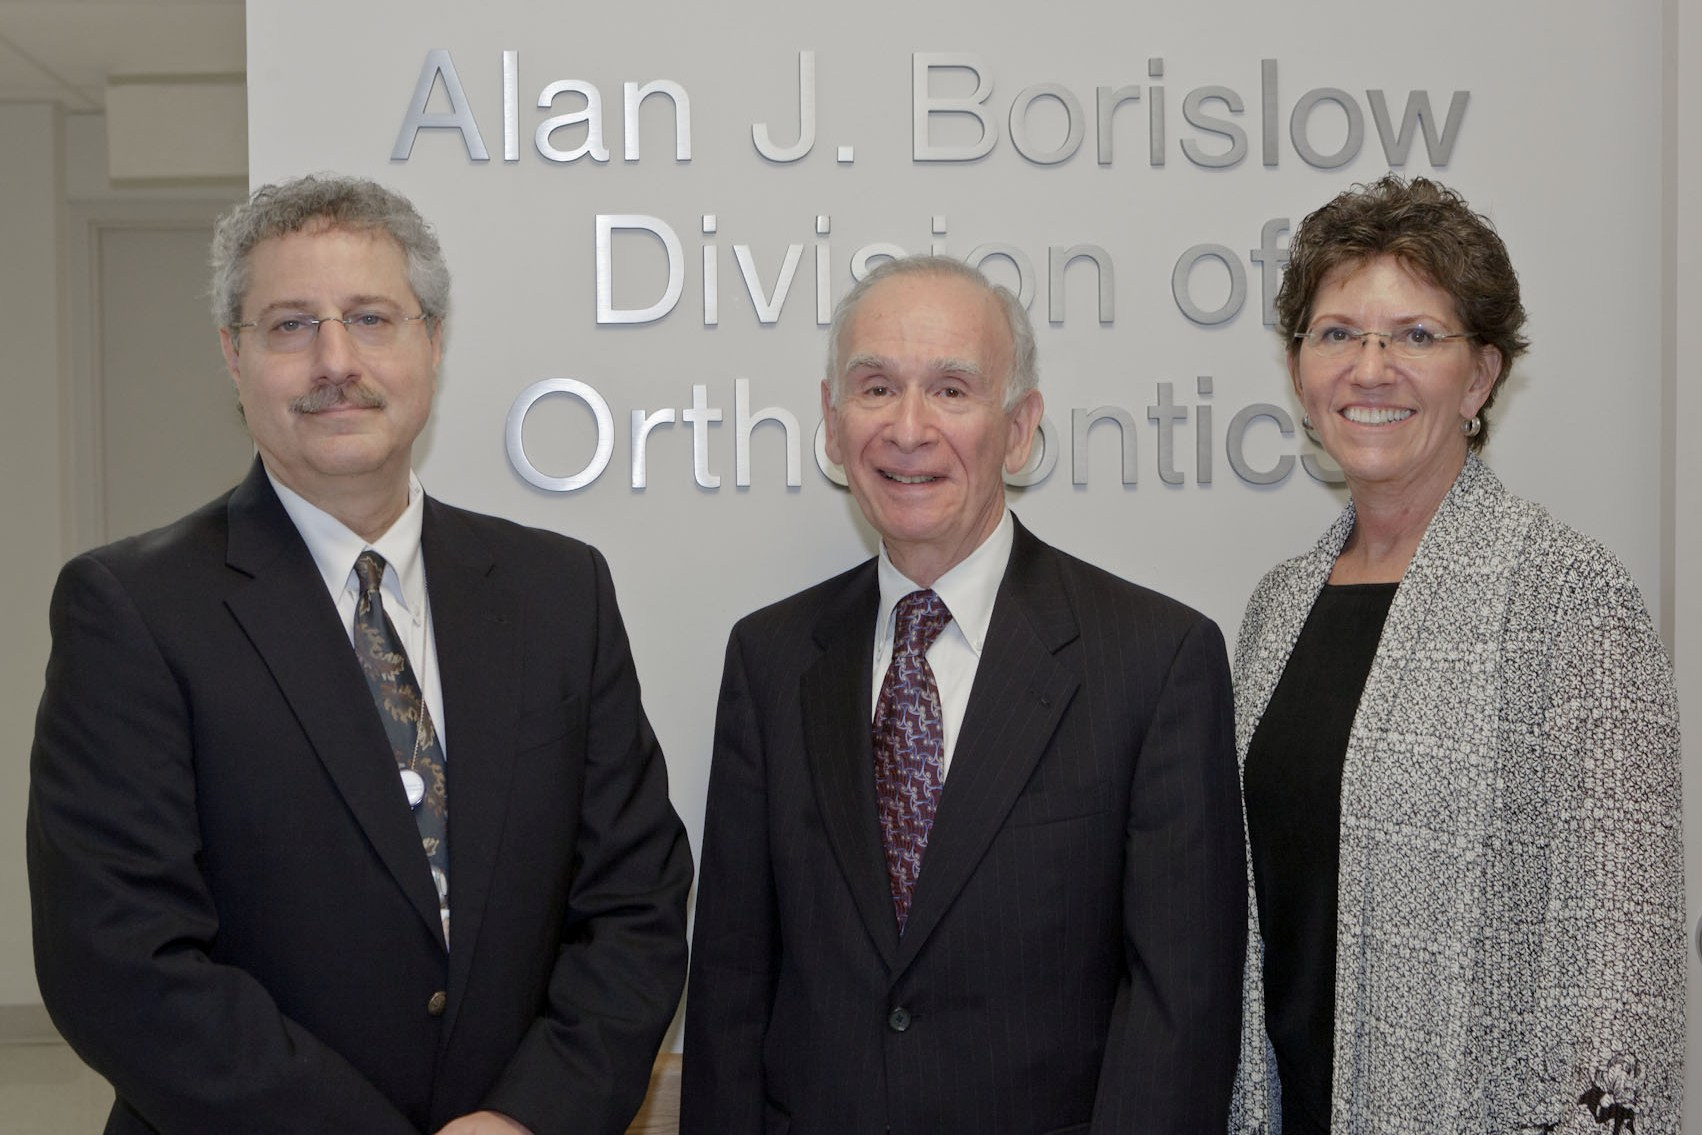 Pictured at the dedication reception are: (l. to r.) Dr. Frederic Barnett, Interim Chairman of Einstein's Maxwell S. Fogel Department of Dental Medicine; Dr. Alan J. Borislow, honoree; and Susan Bernini, Chief Operating Officer, Einstein Healthcare Network